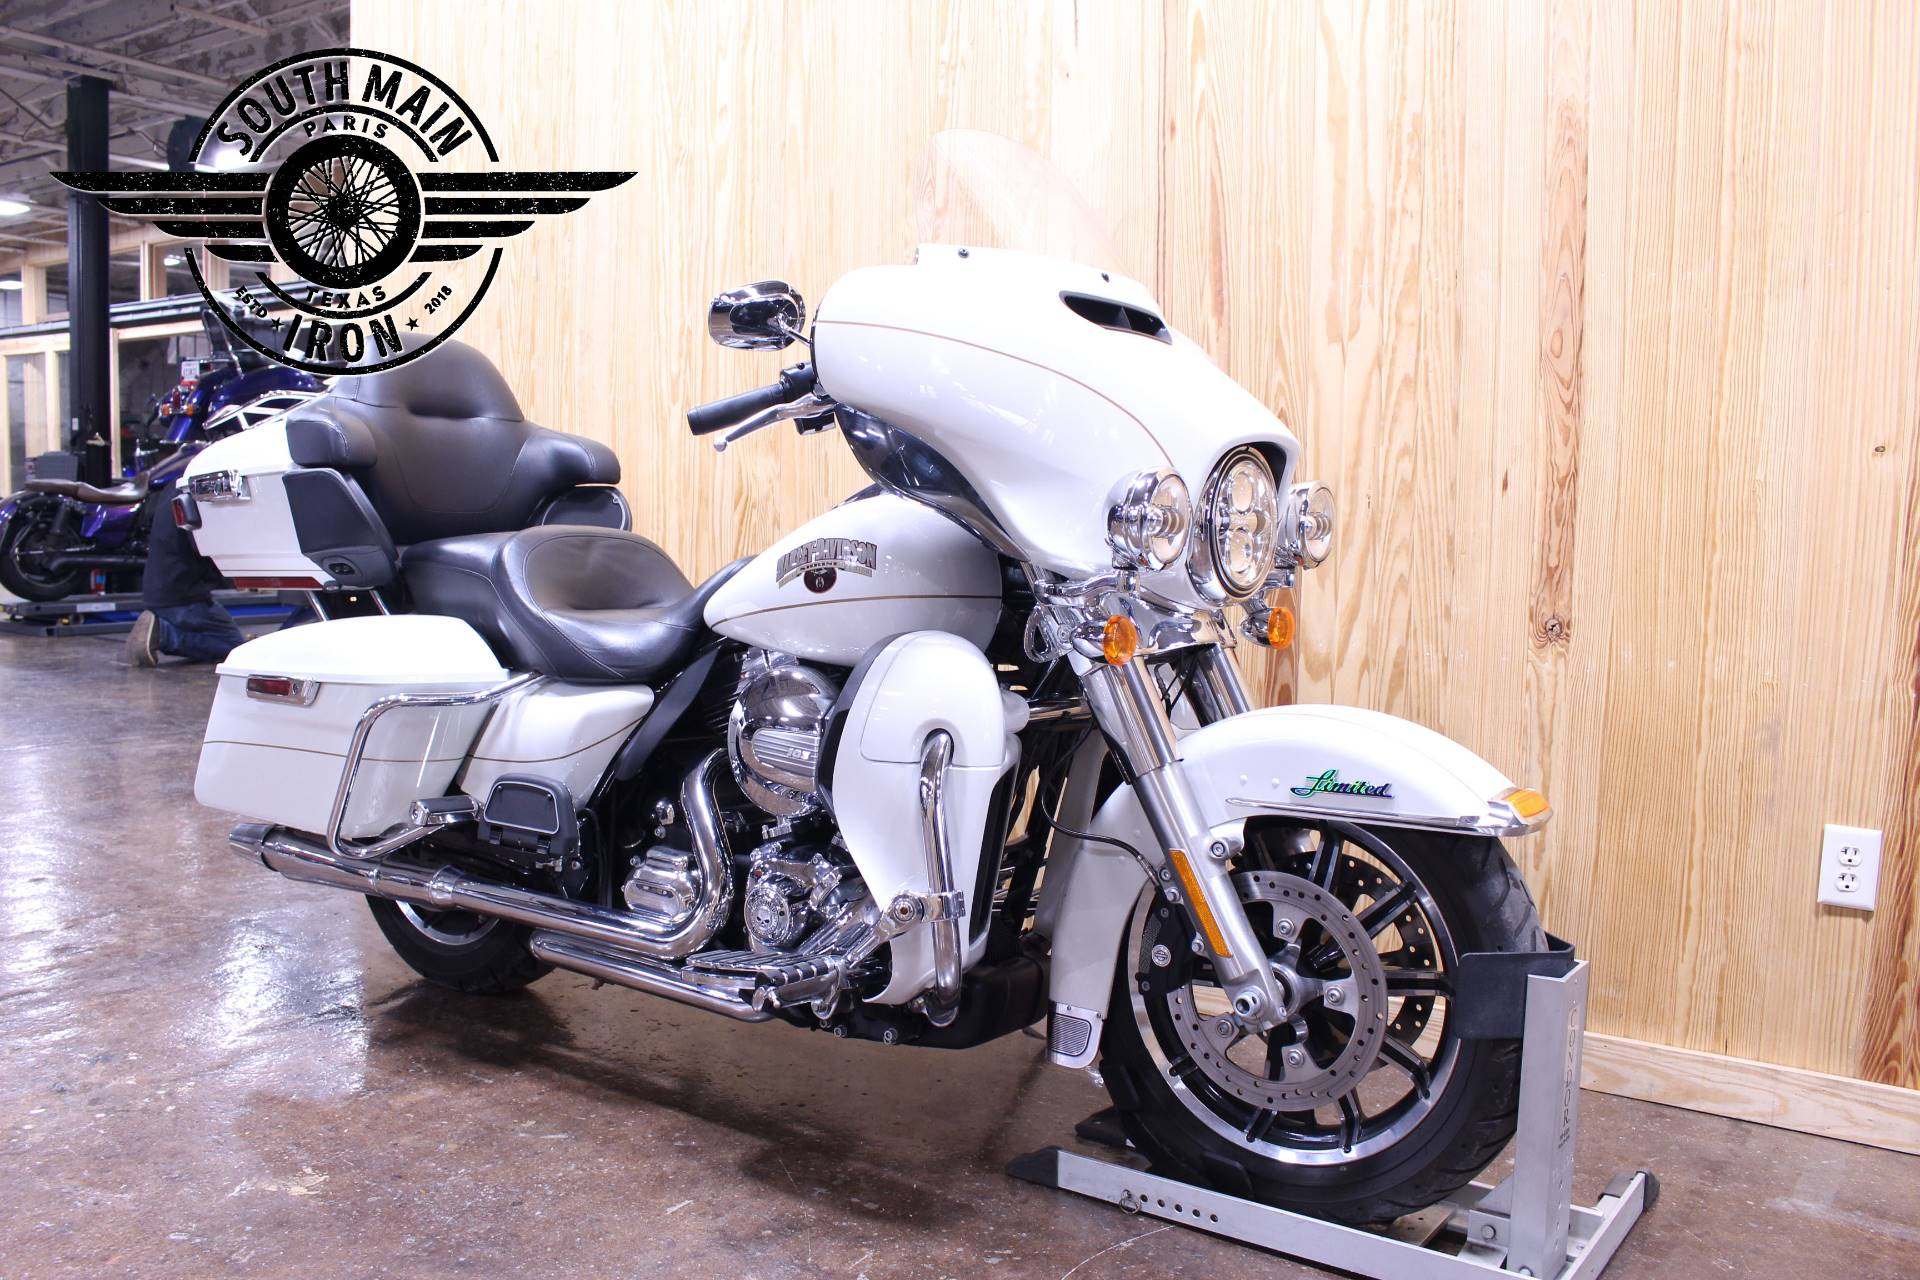 2014 Harley-Davidson Ultra Limited in Paris, Texas - Photo 2